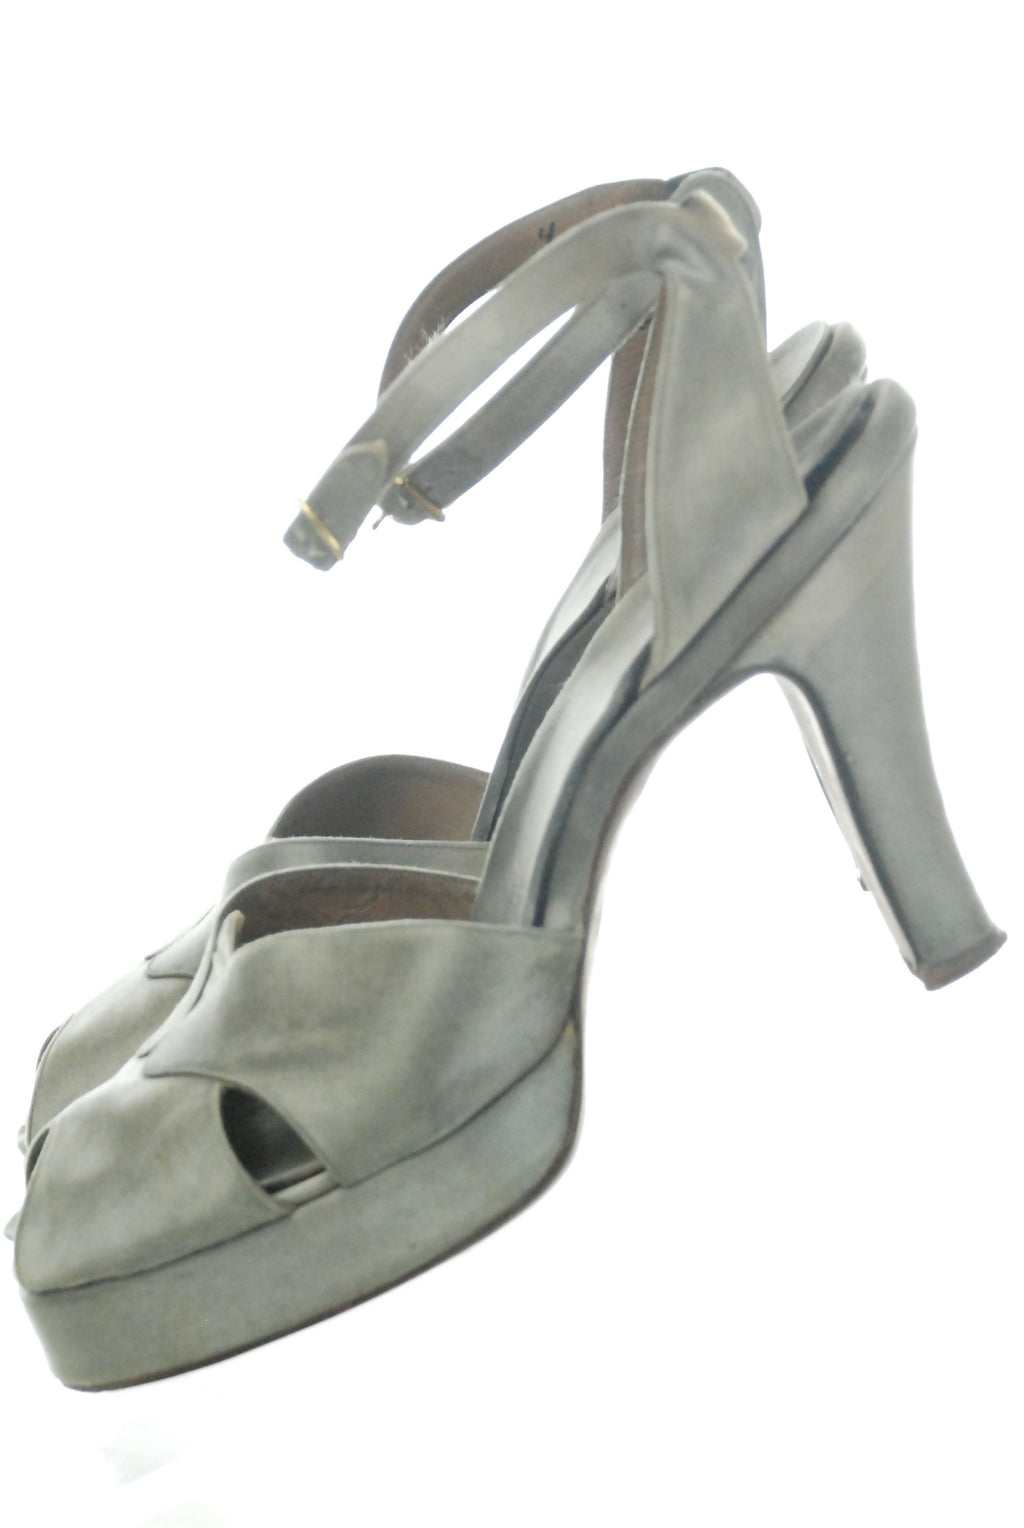 Fabulous Grey Satin Sandals 1940s Platform Heels with Peeptoe and Ankle Straps Size 7